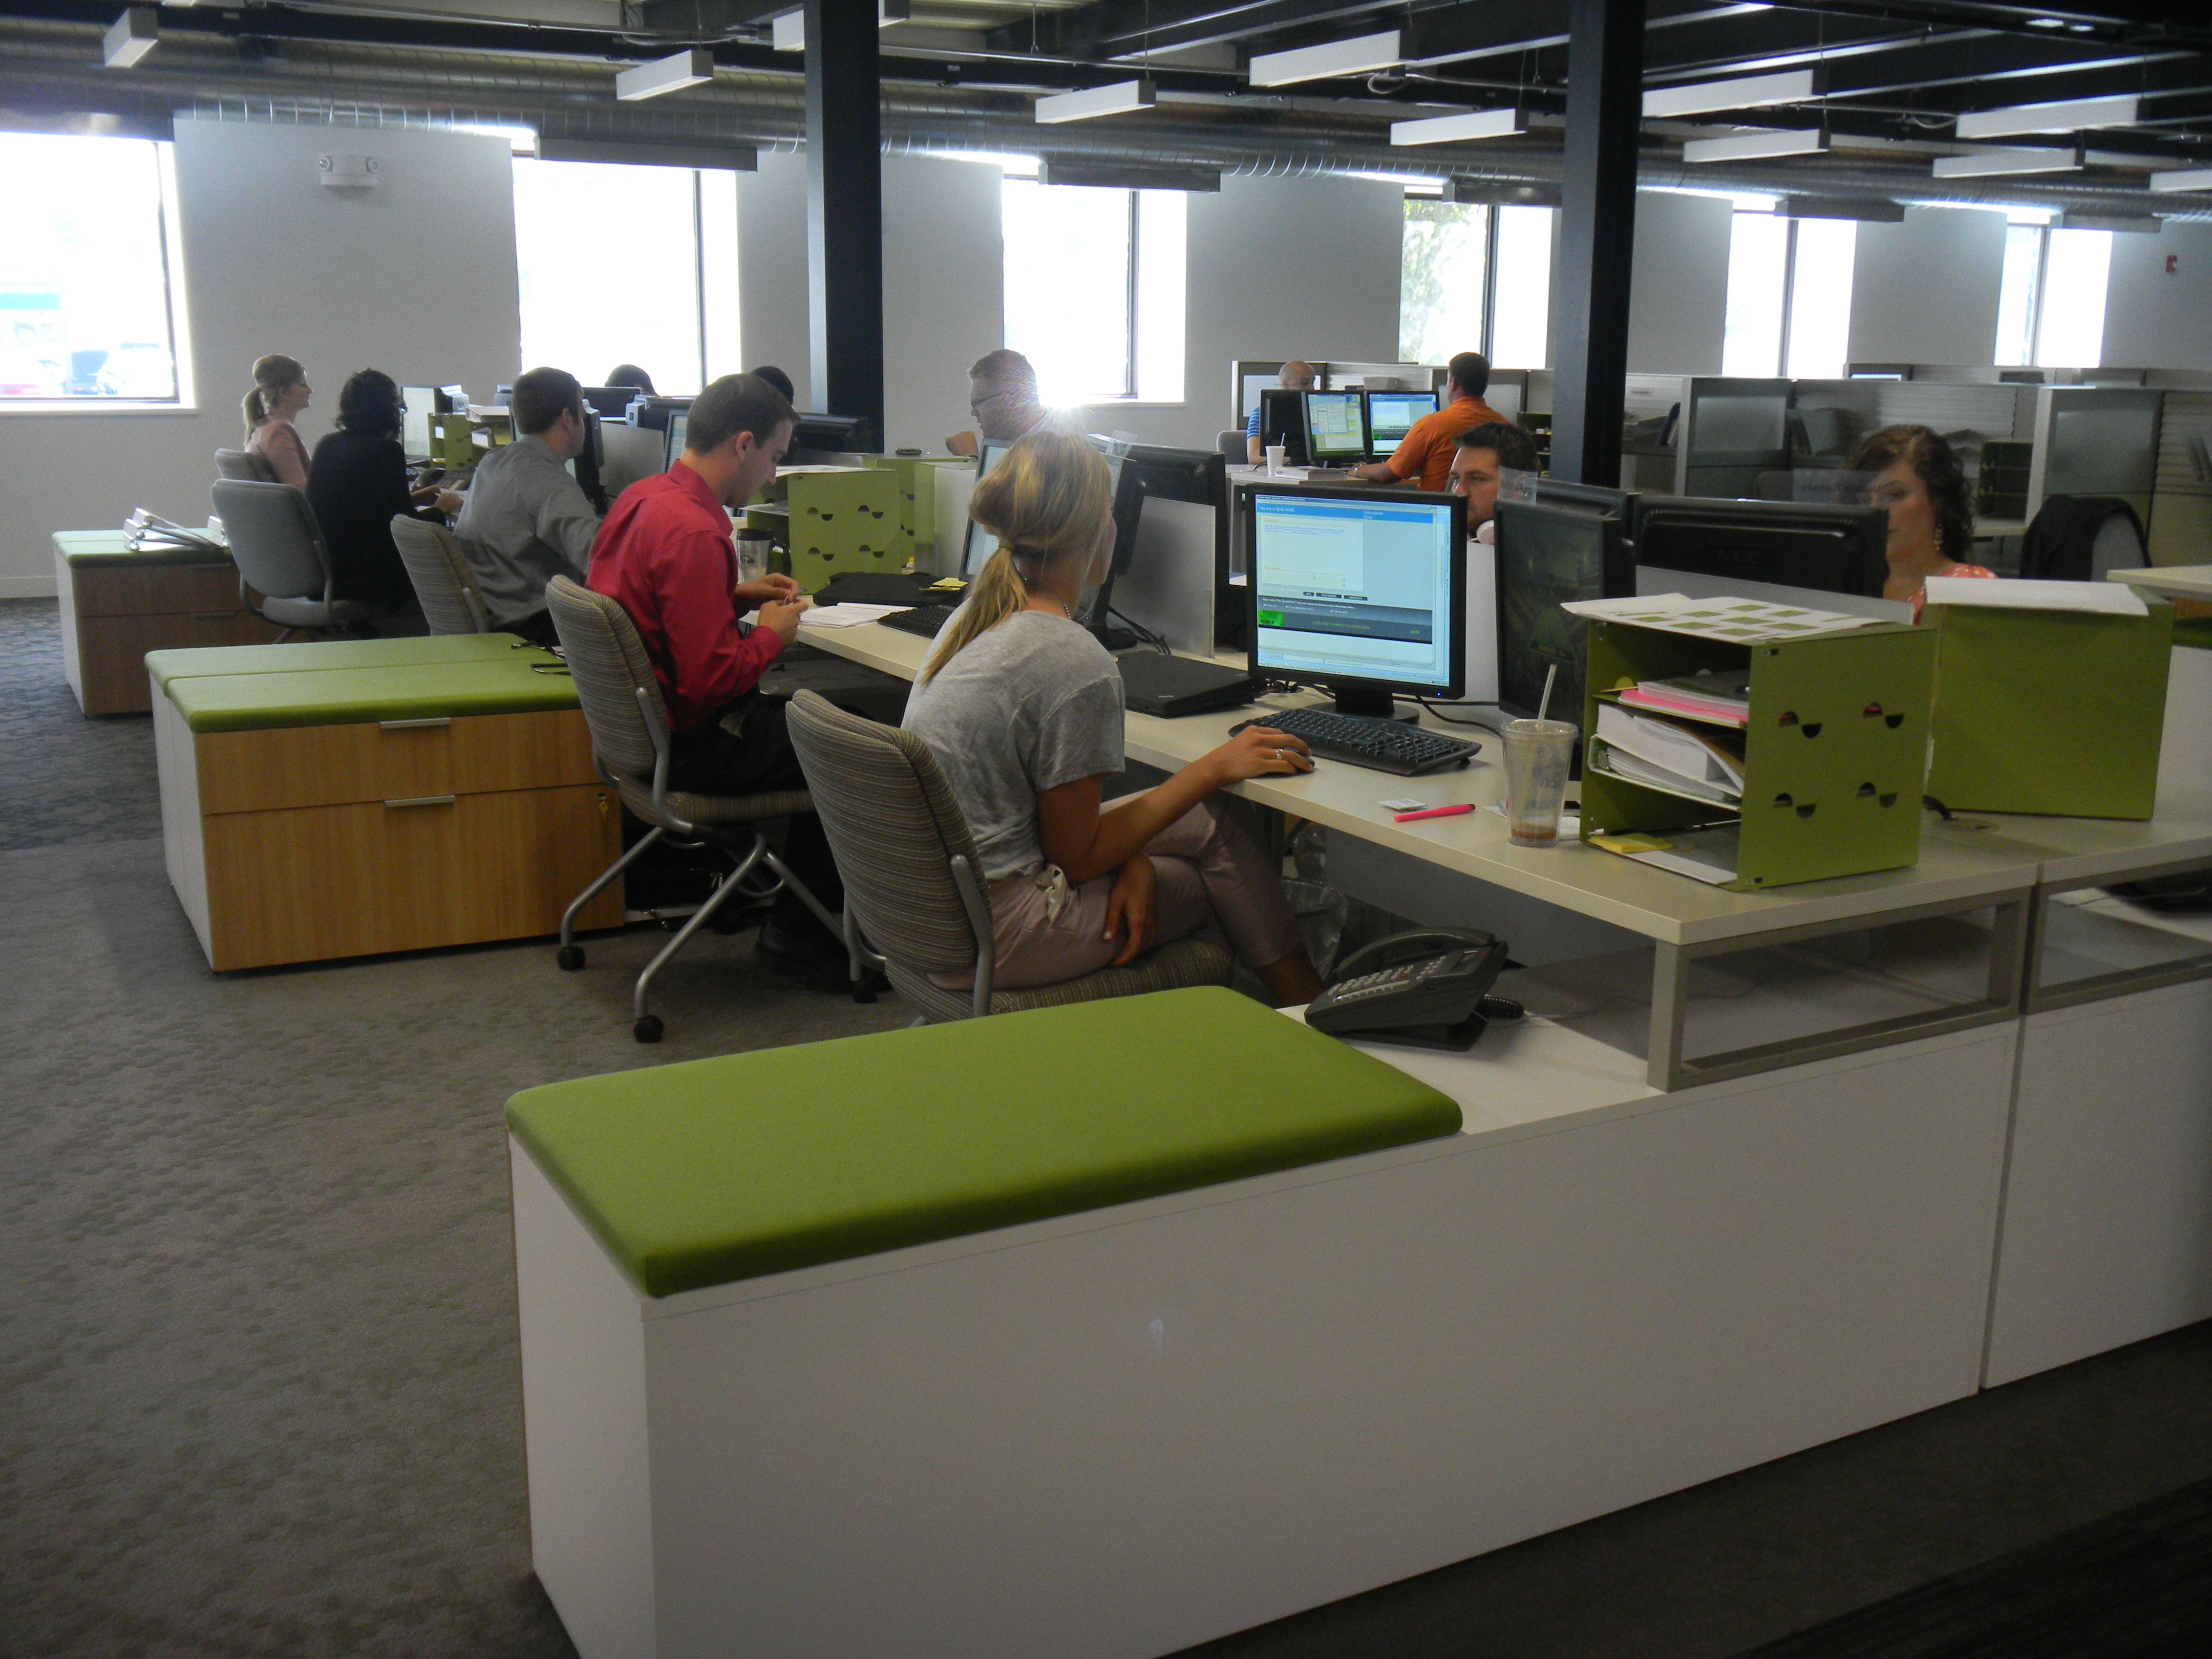 Abound workstation forward for Office design considerations